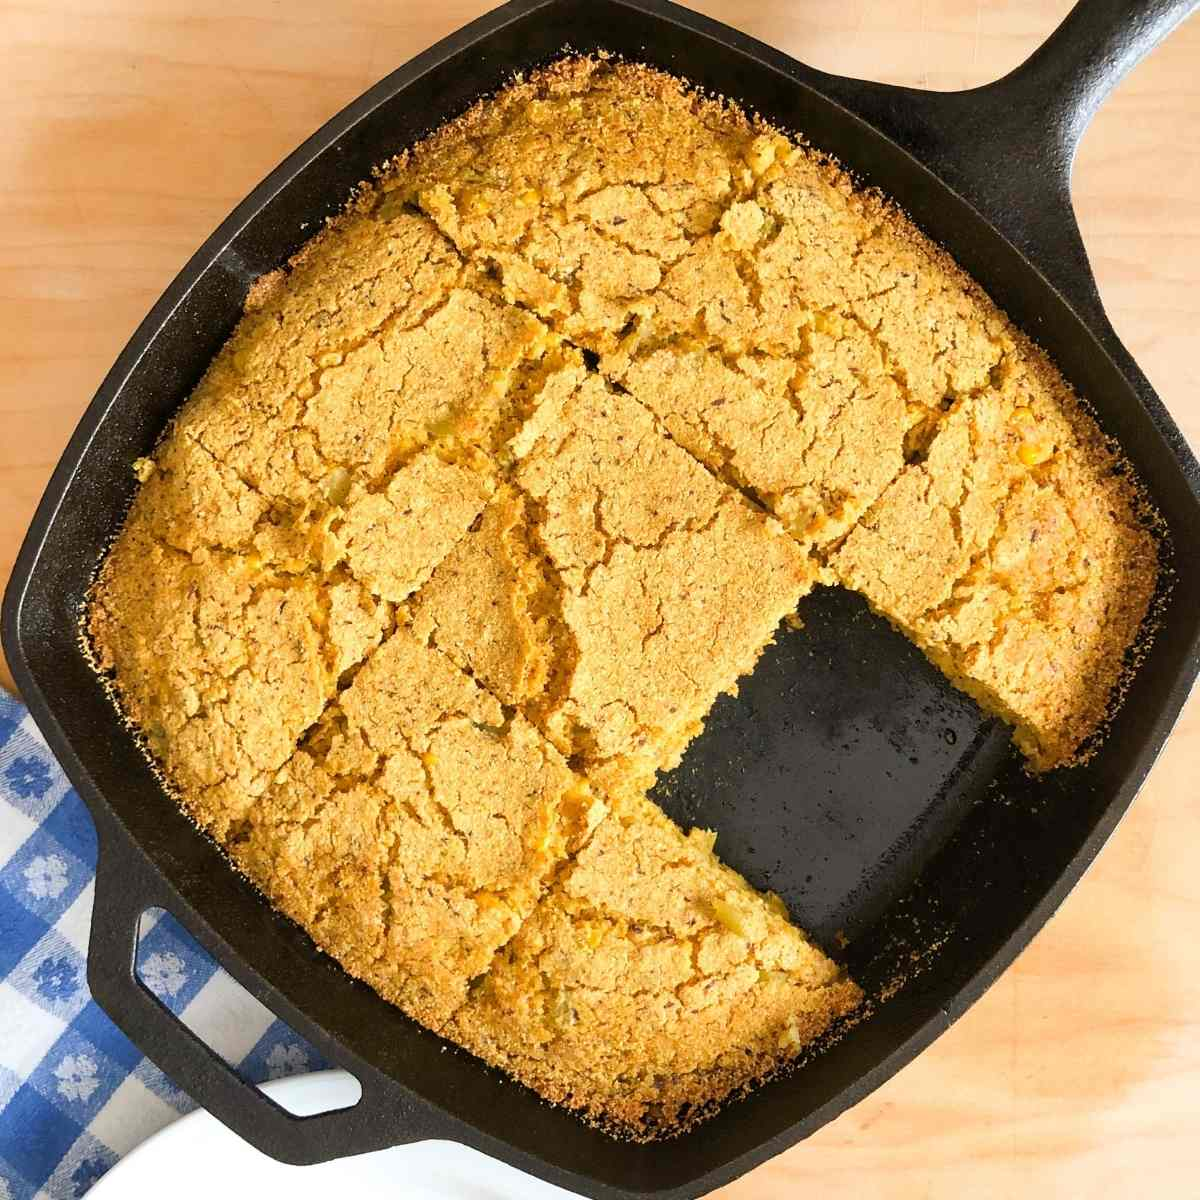 A skillet with gluten free cornbread cut into squares.